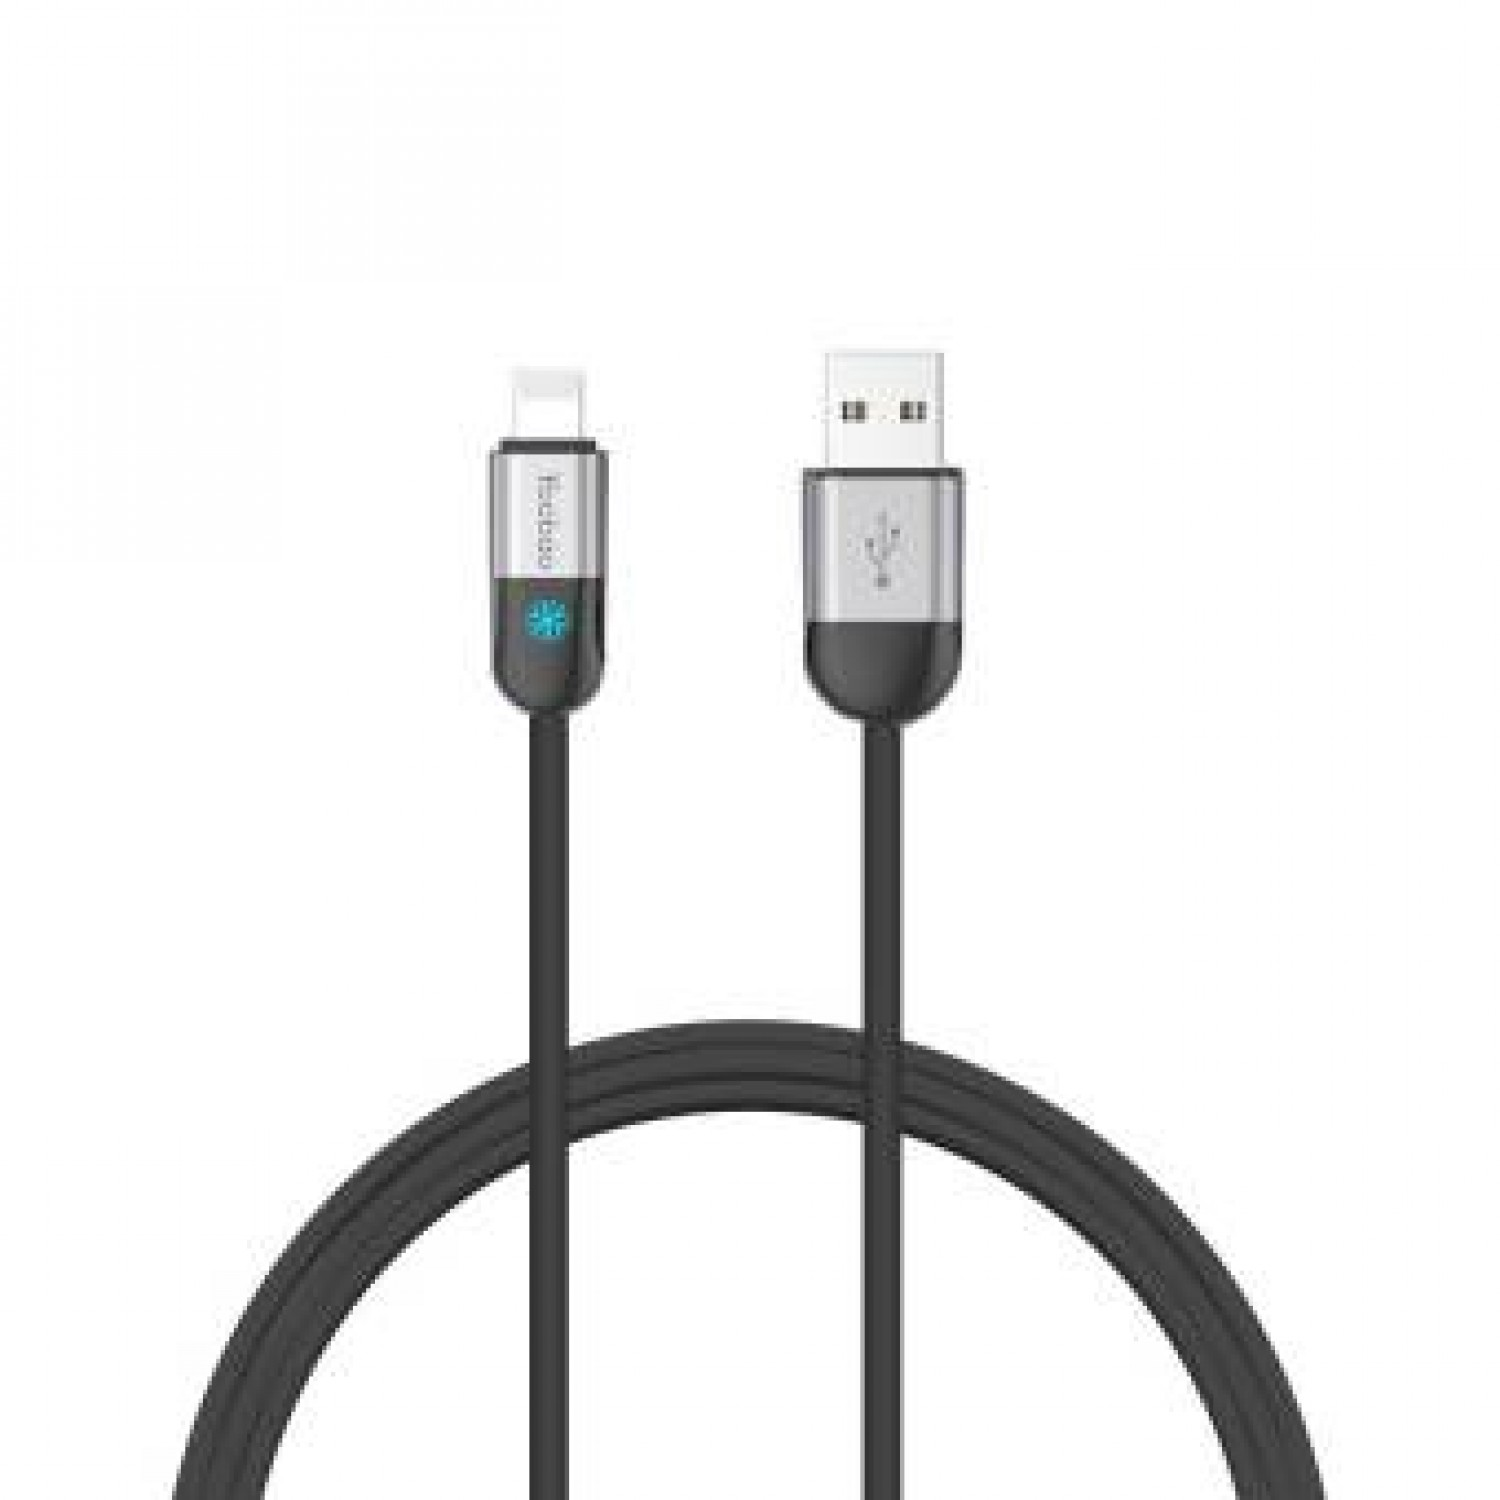 Yoobao YB 417 Apple Lightning Mobile Cable 100cm for Apple iPhone IOS